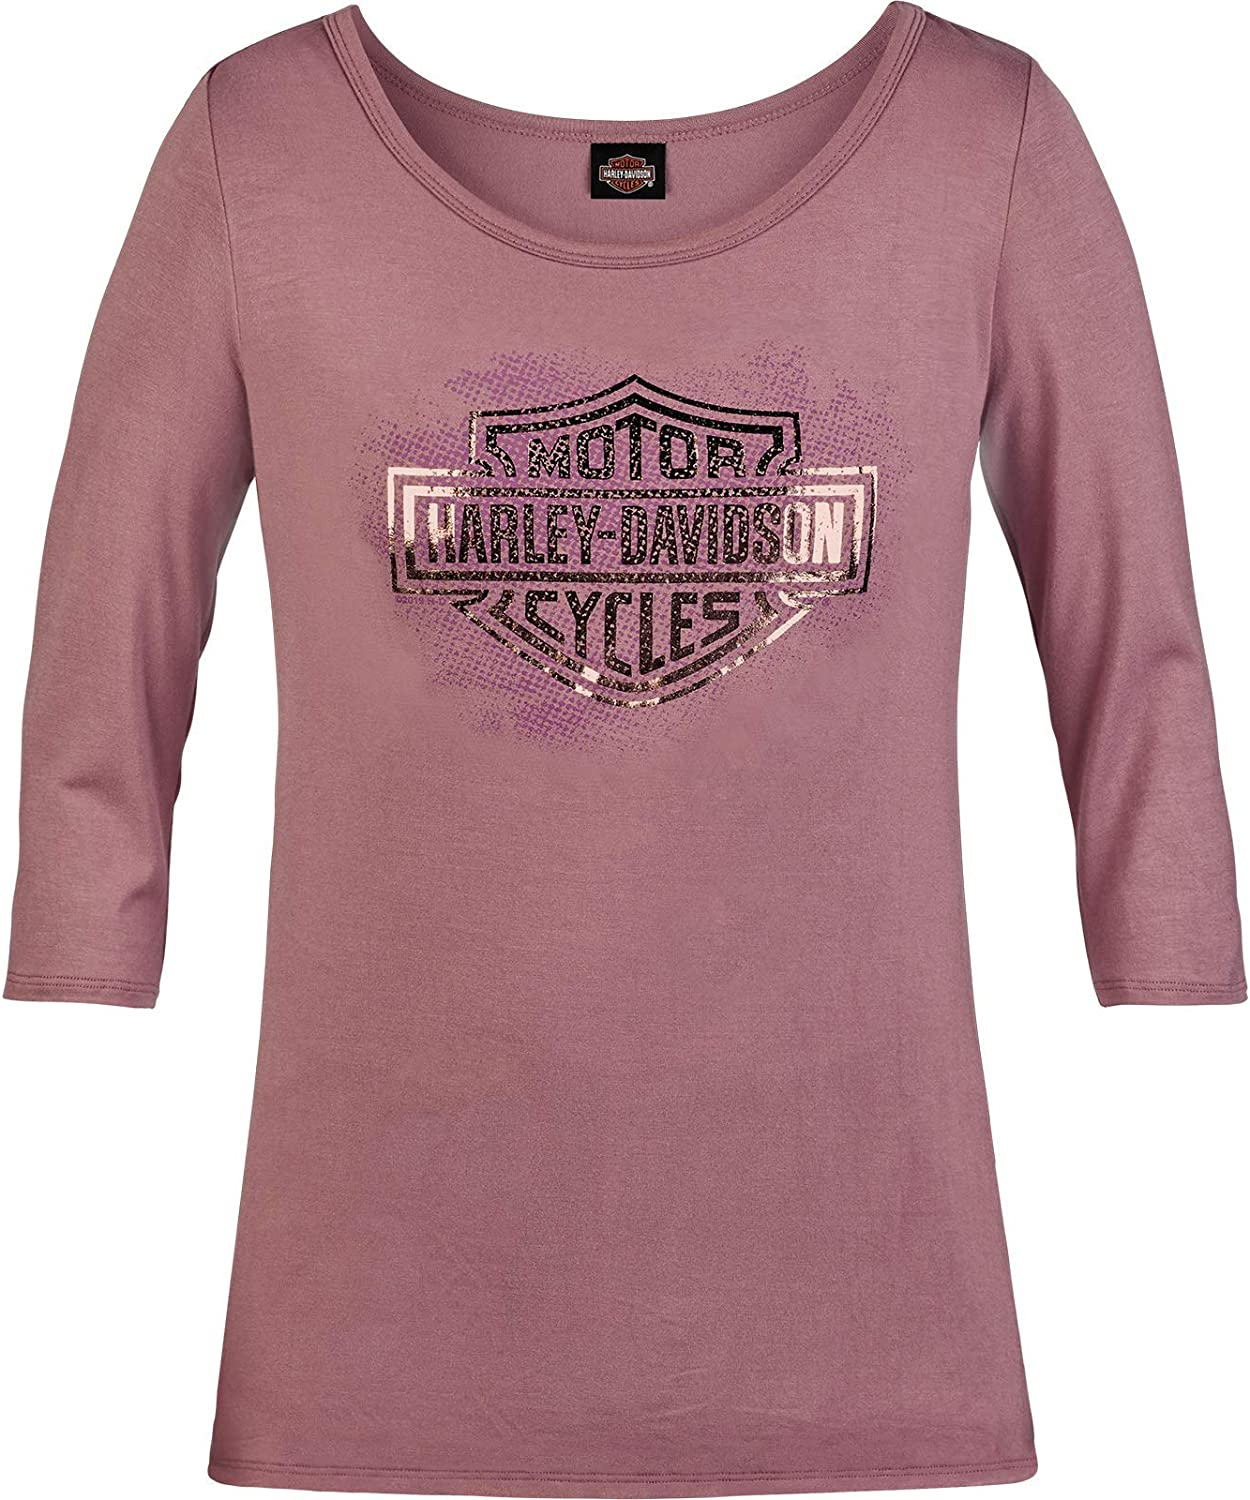 HARLEY-DAVIDSON Military Imagine Womens Mauve 3//4 Sleeve Scoop Neck T-Shirt RAF Mildenhall